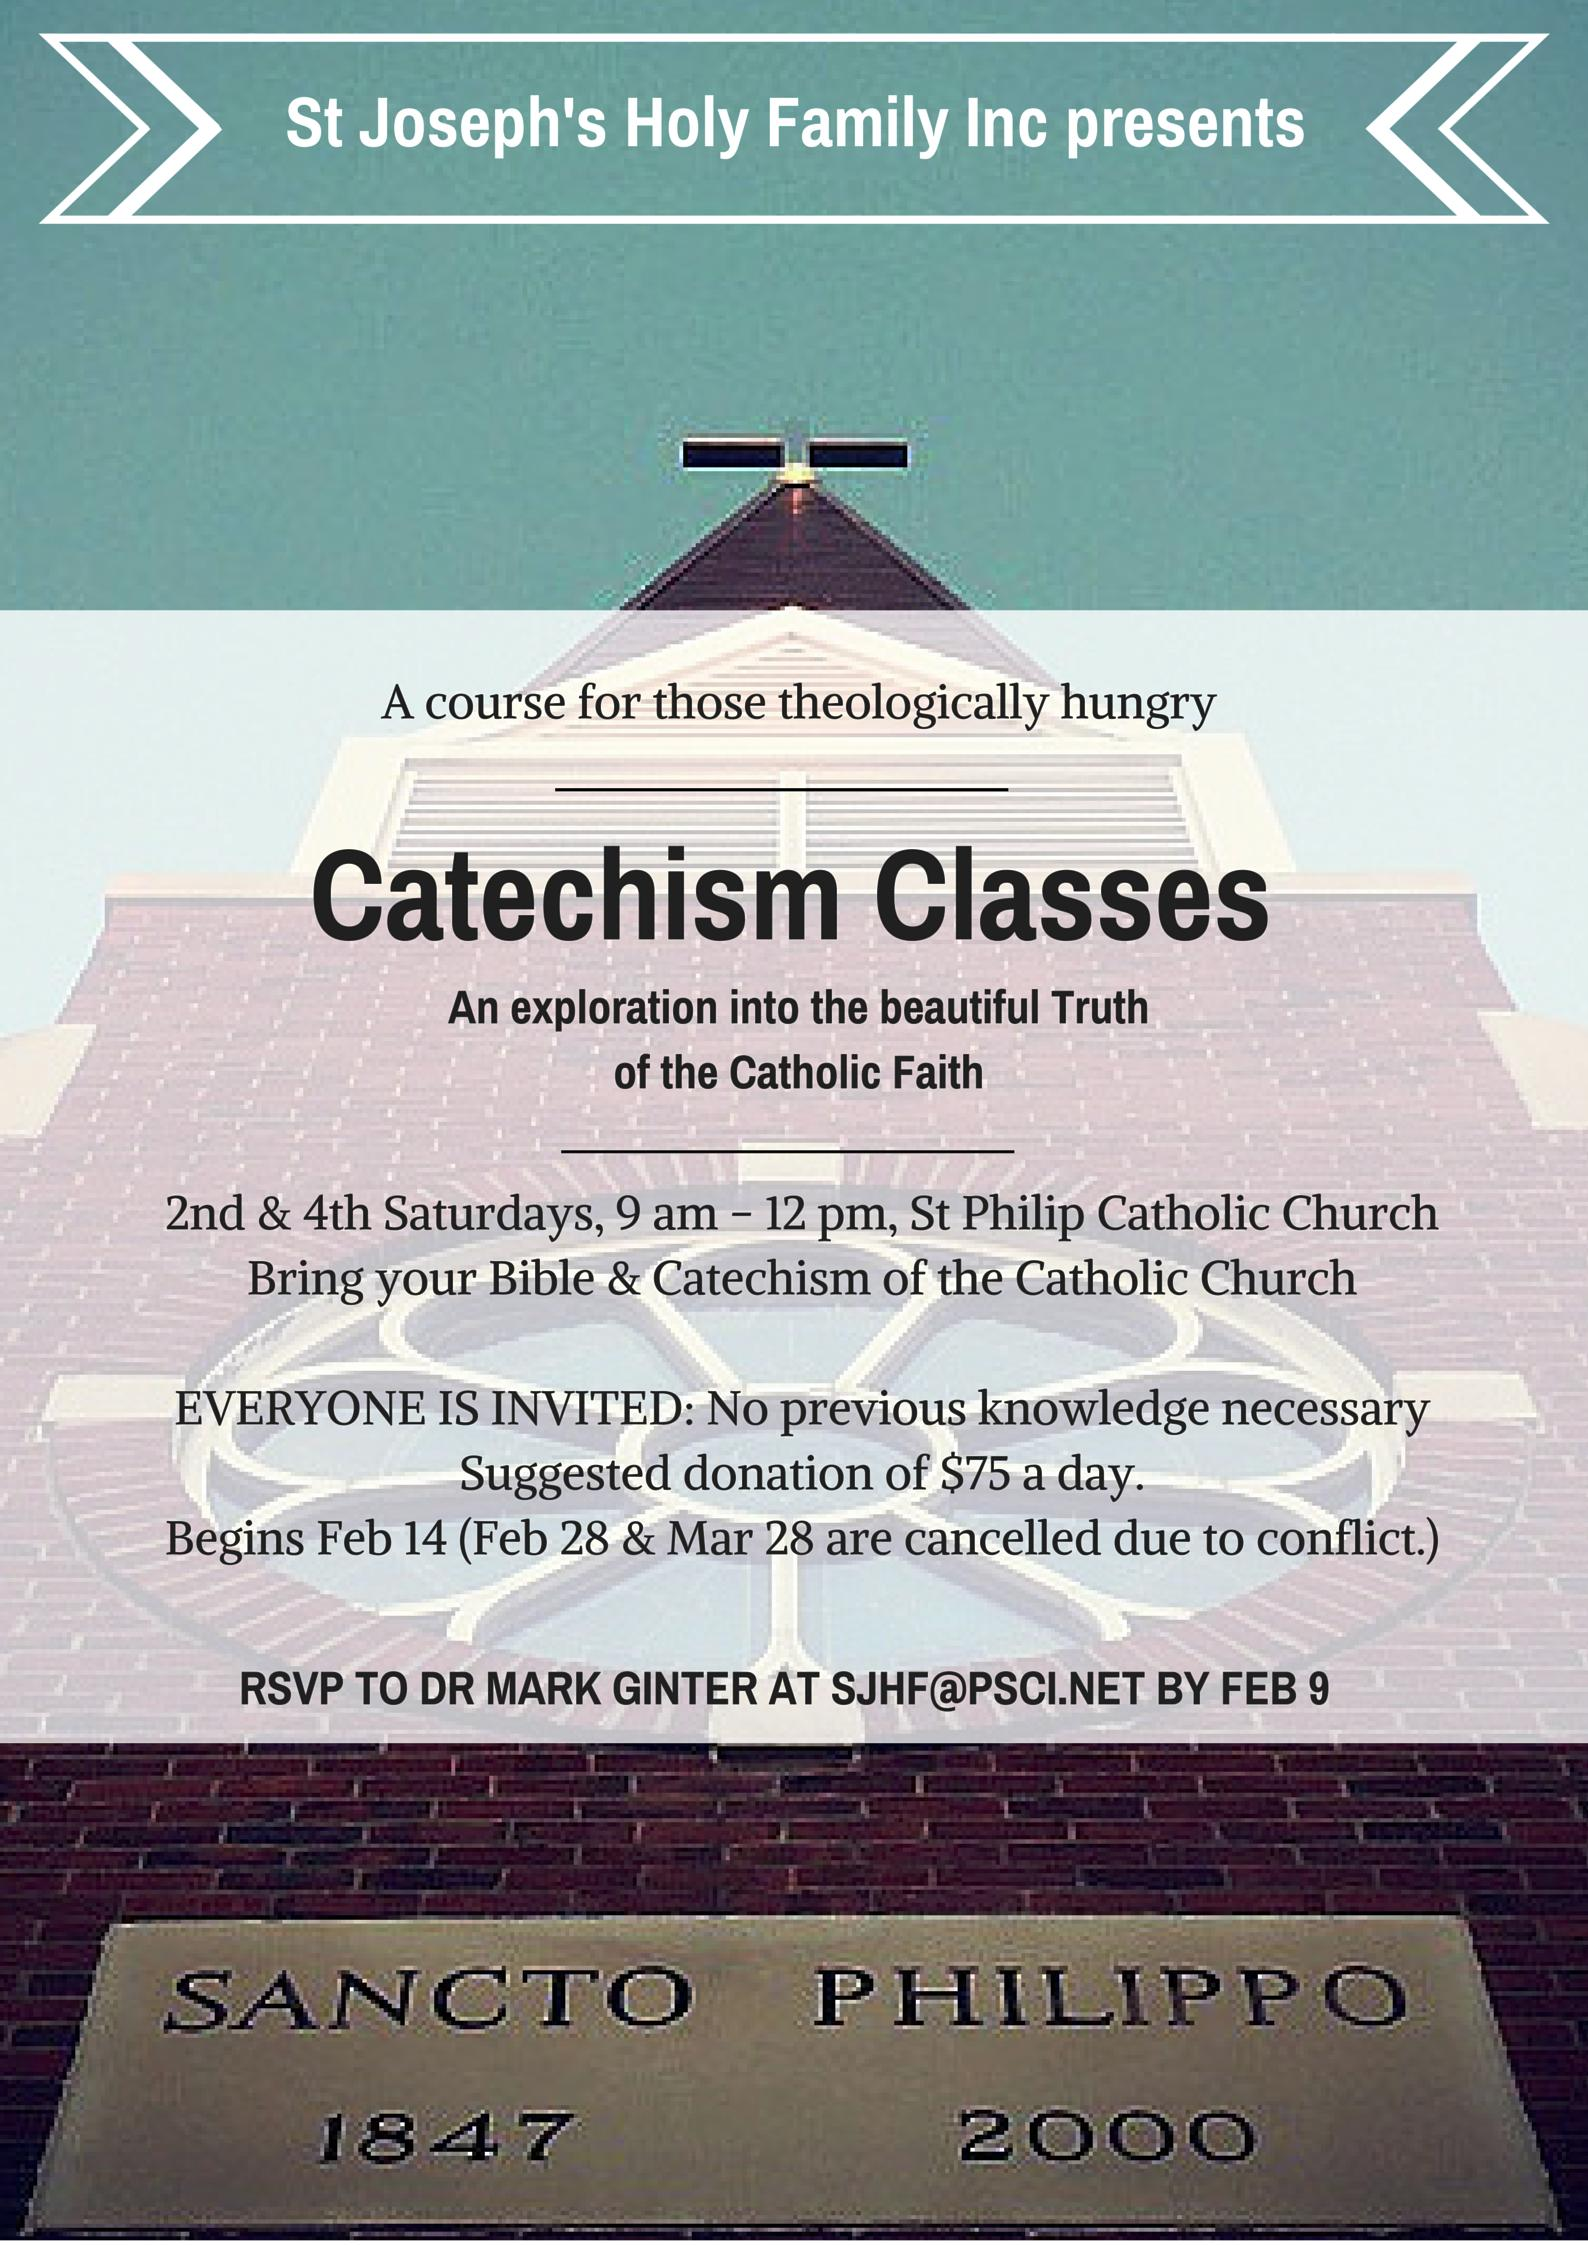 Catechism class at St Philip